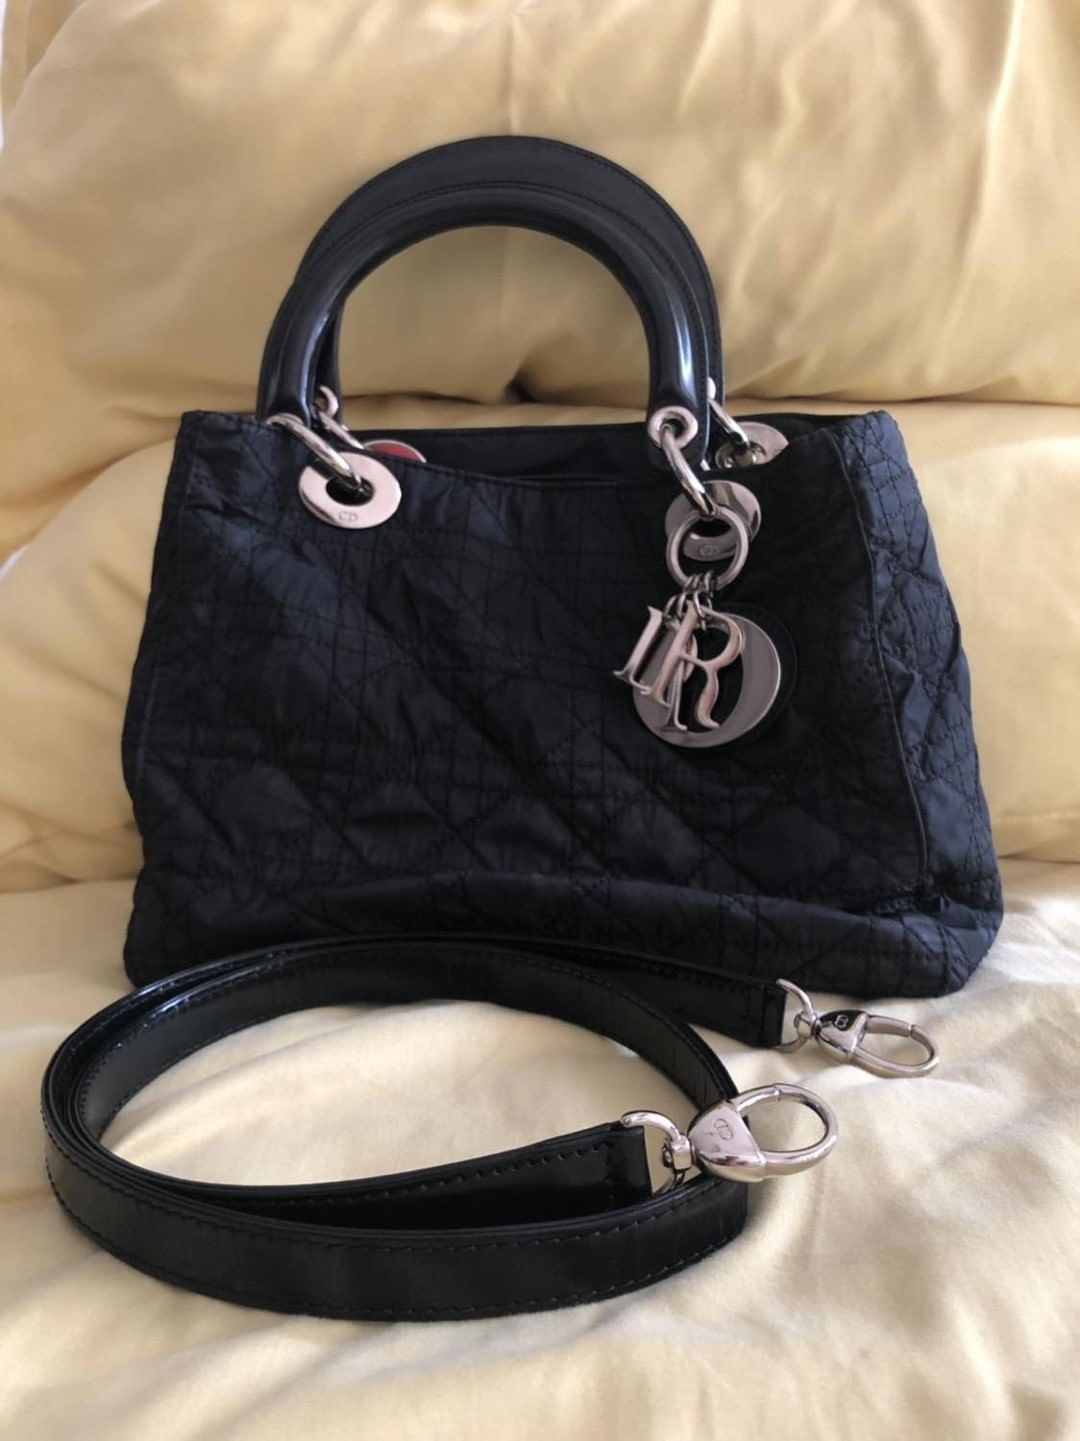 """d378f55aa0653 Lady Dior Nylon Medium Black (vintage) Measurements   9"""" x 8"""" x 4.5""""  Condition   6 10 (for a bag aged 20years old is quite impressive!)"""